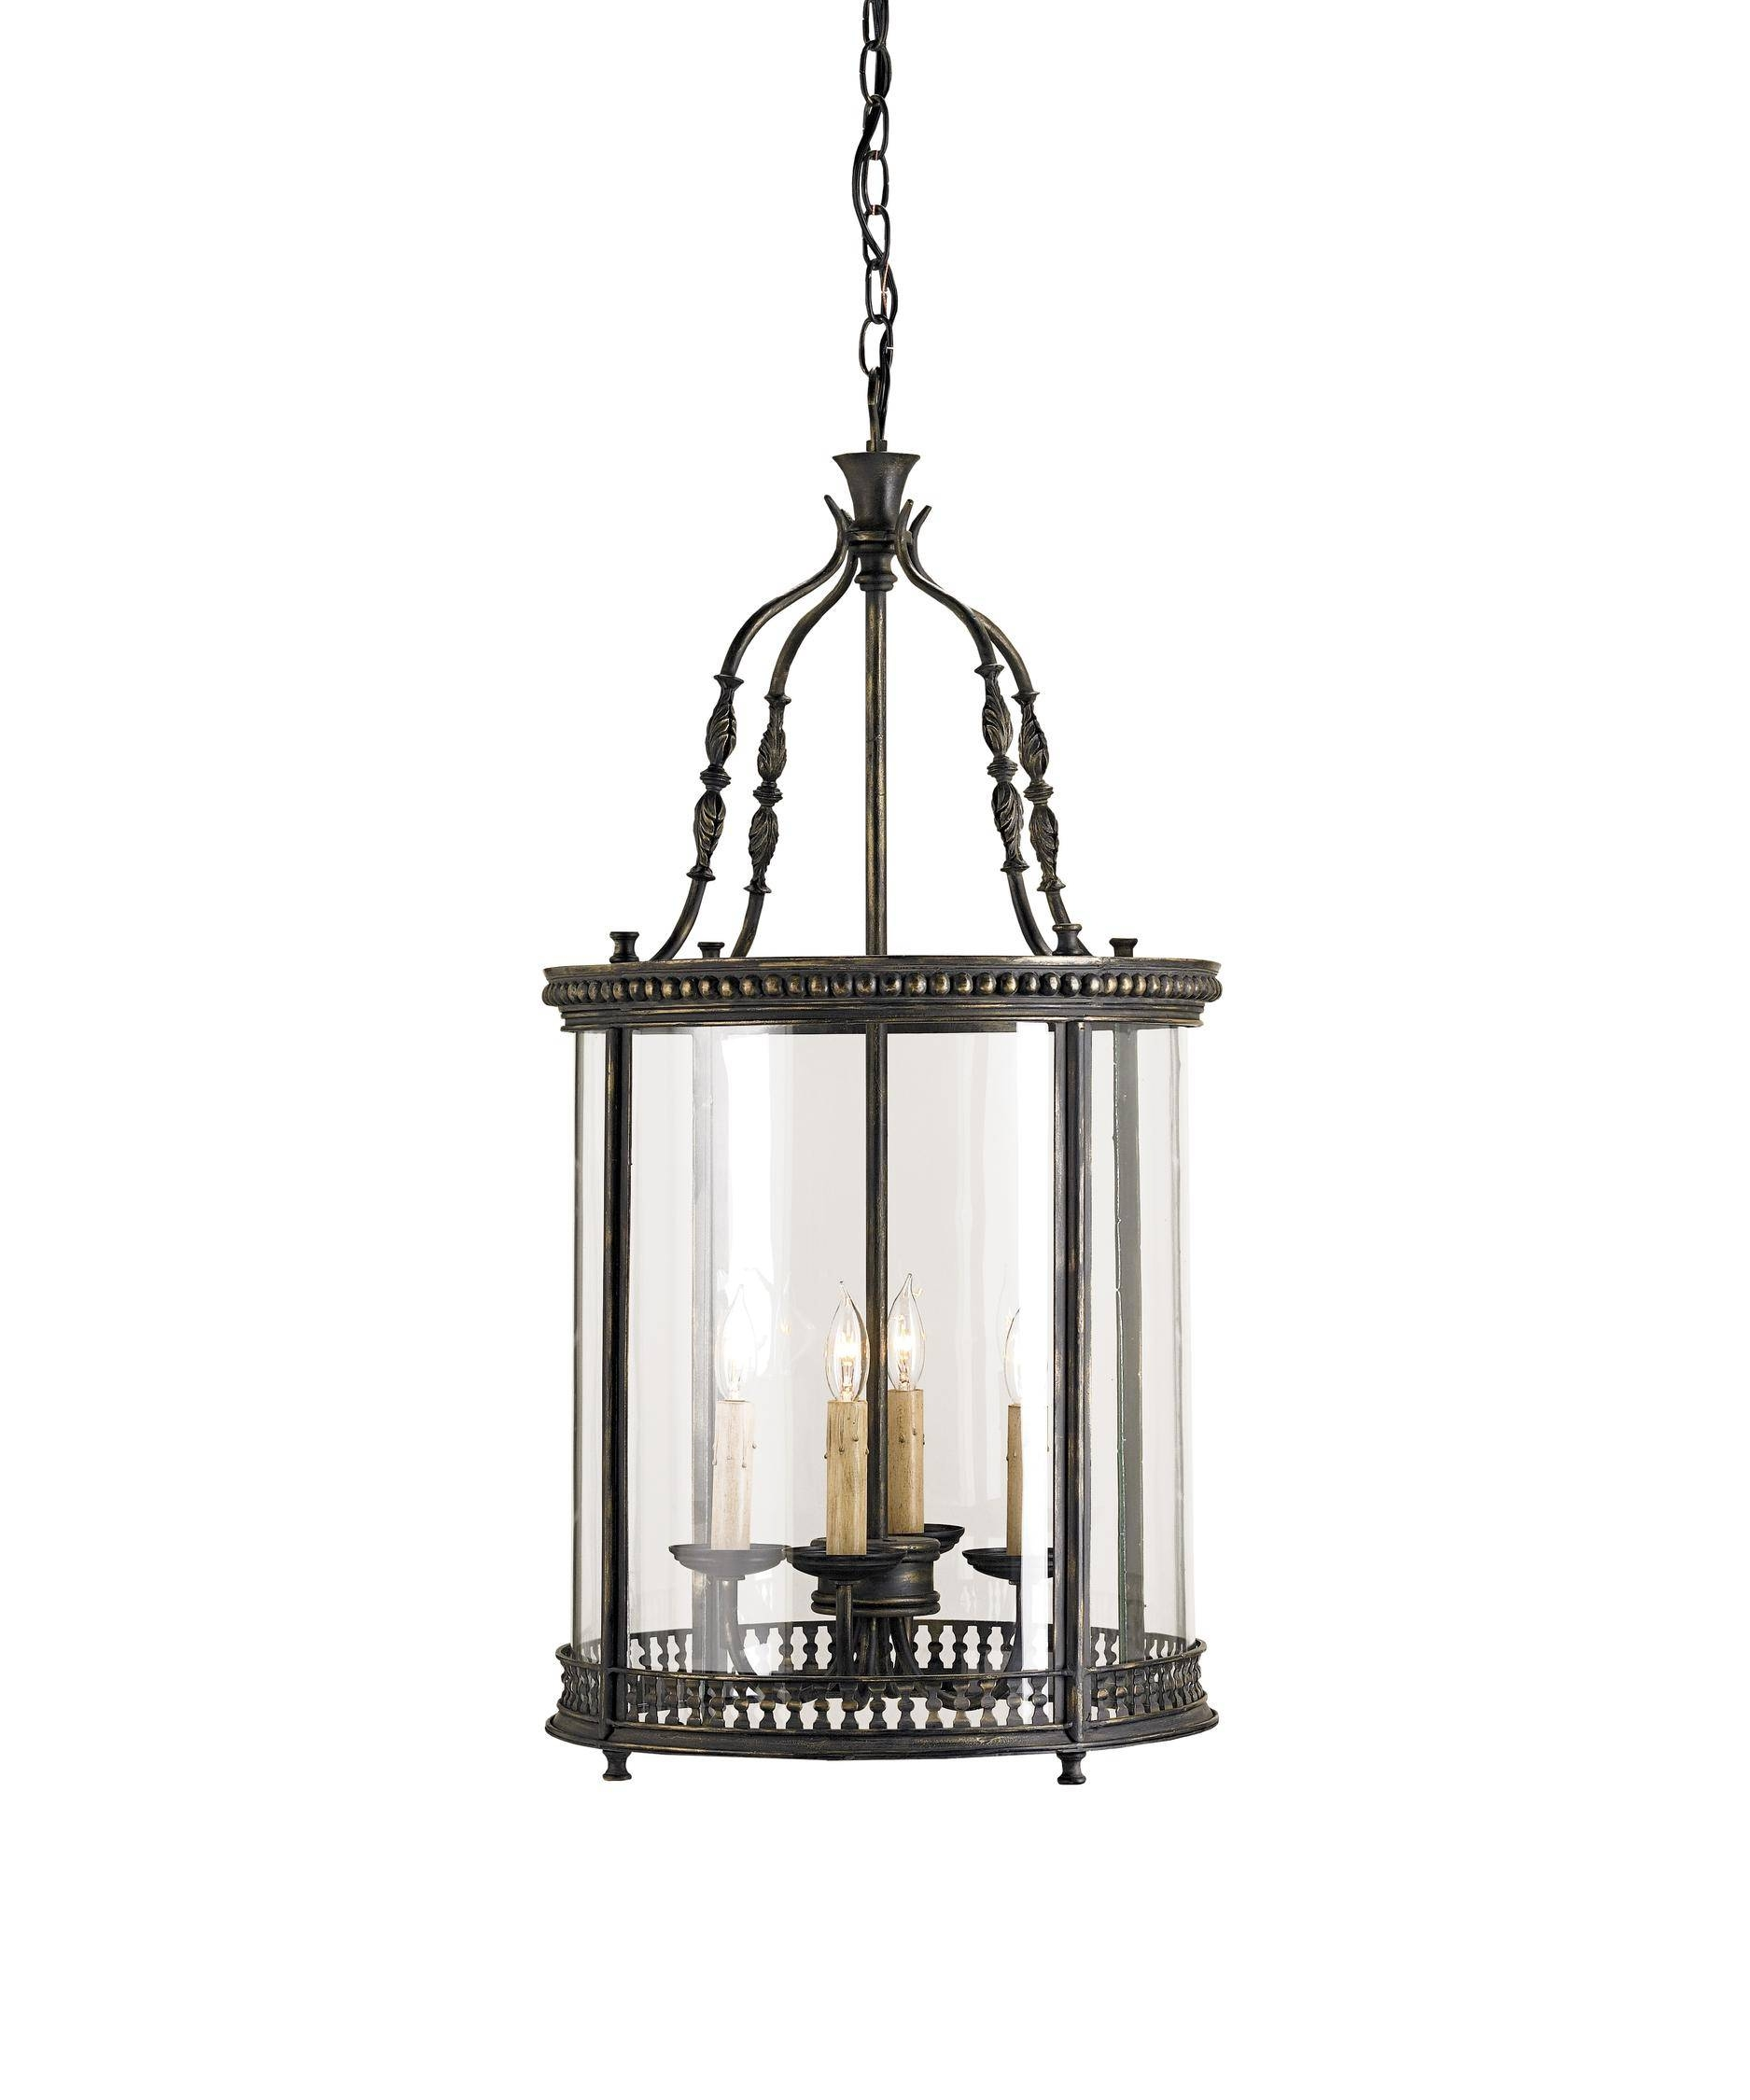 Currey And Company 9046 Grayson 16 Inch Wide Foyer Pendant Regarding Foyer Pendant Light Fixtures (View 11 of 15)